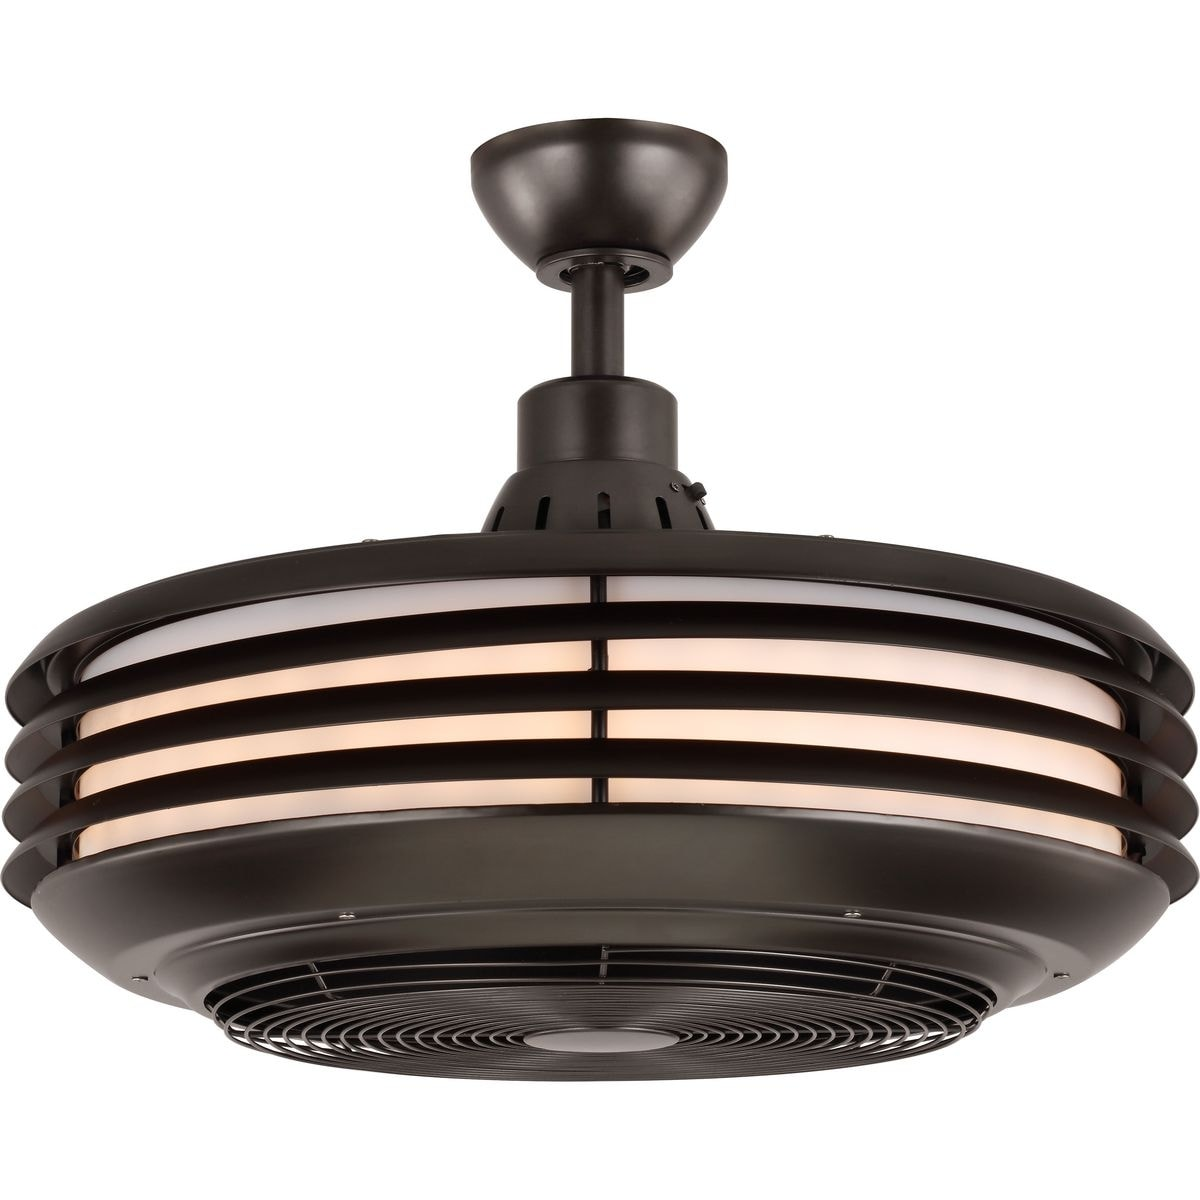 Image of: Shop Black Friday Deals On Sanford 24 Enclosed Indoor Outdoor Ceiling Fan With Led Light 15 580 X 26 120 X 26 120 On Sale Overstock 26295904